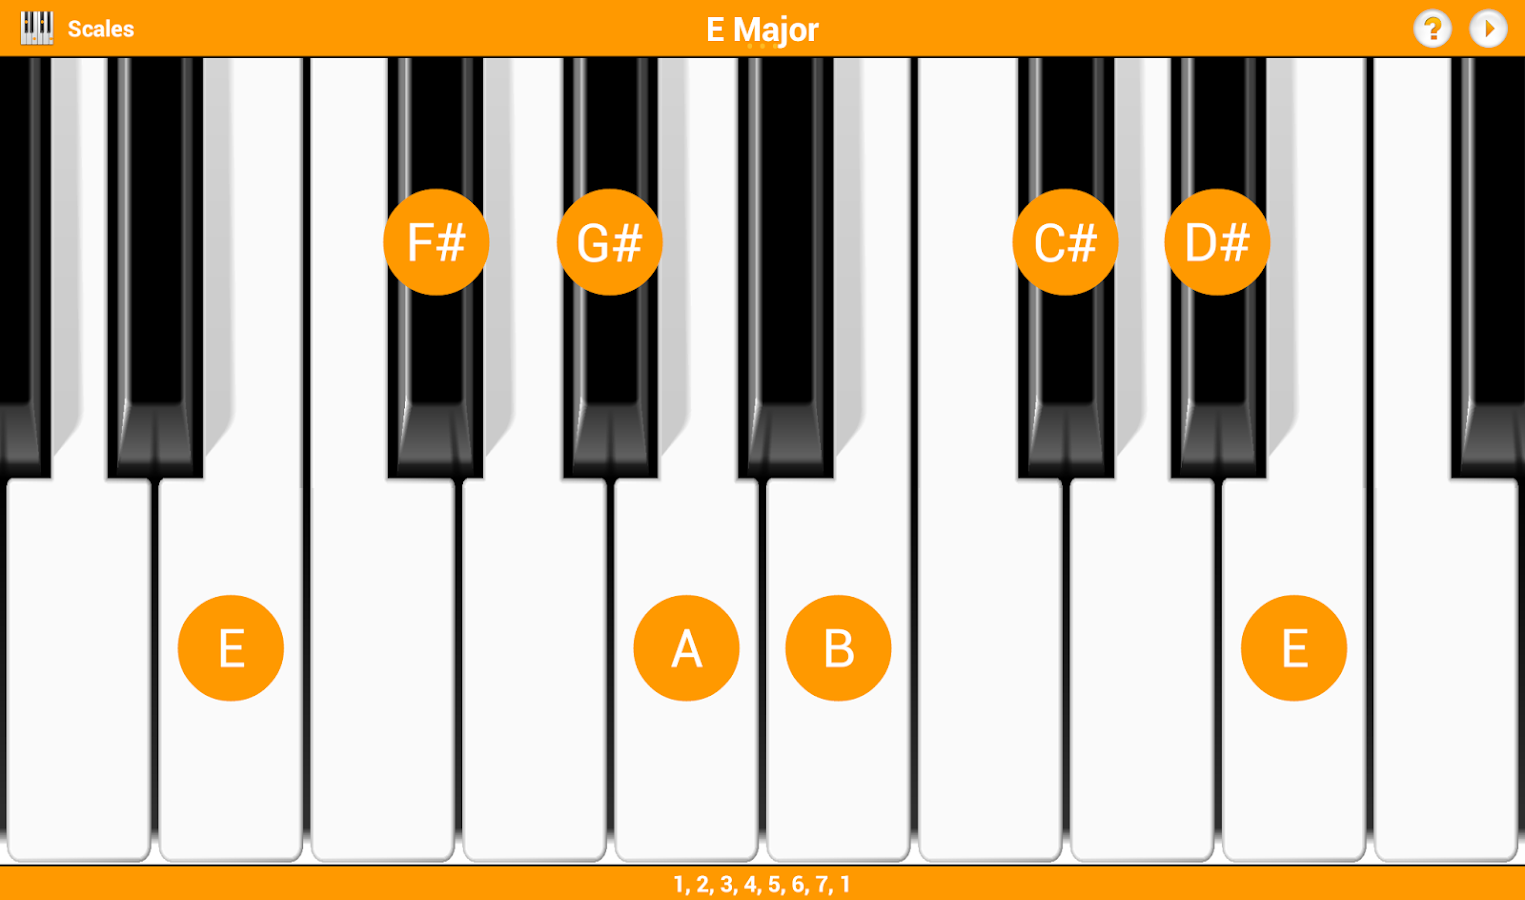 Keychord piano chordsscales apk download android books keychord piano chordsscales screenshot 12 hexwebz Images